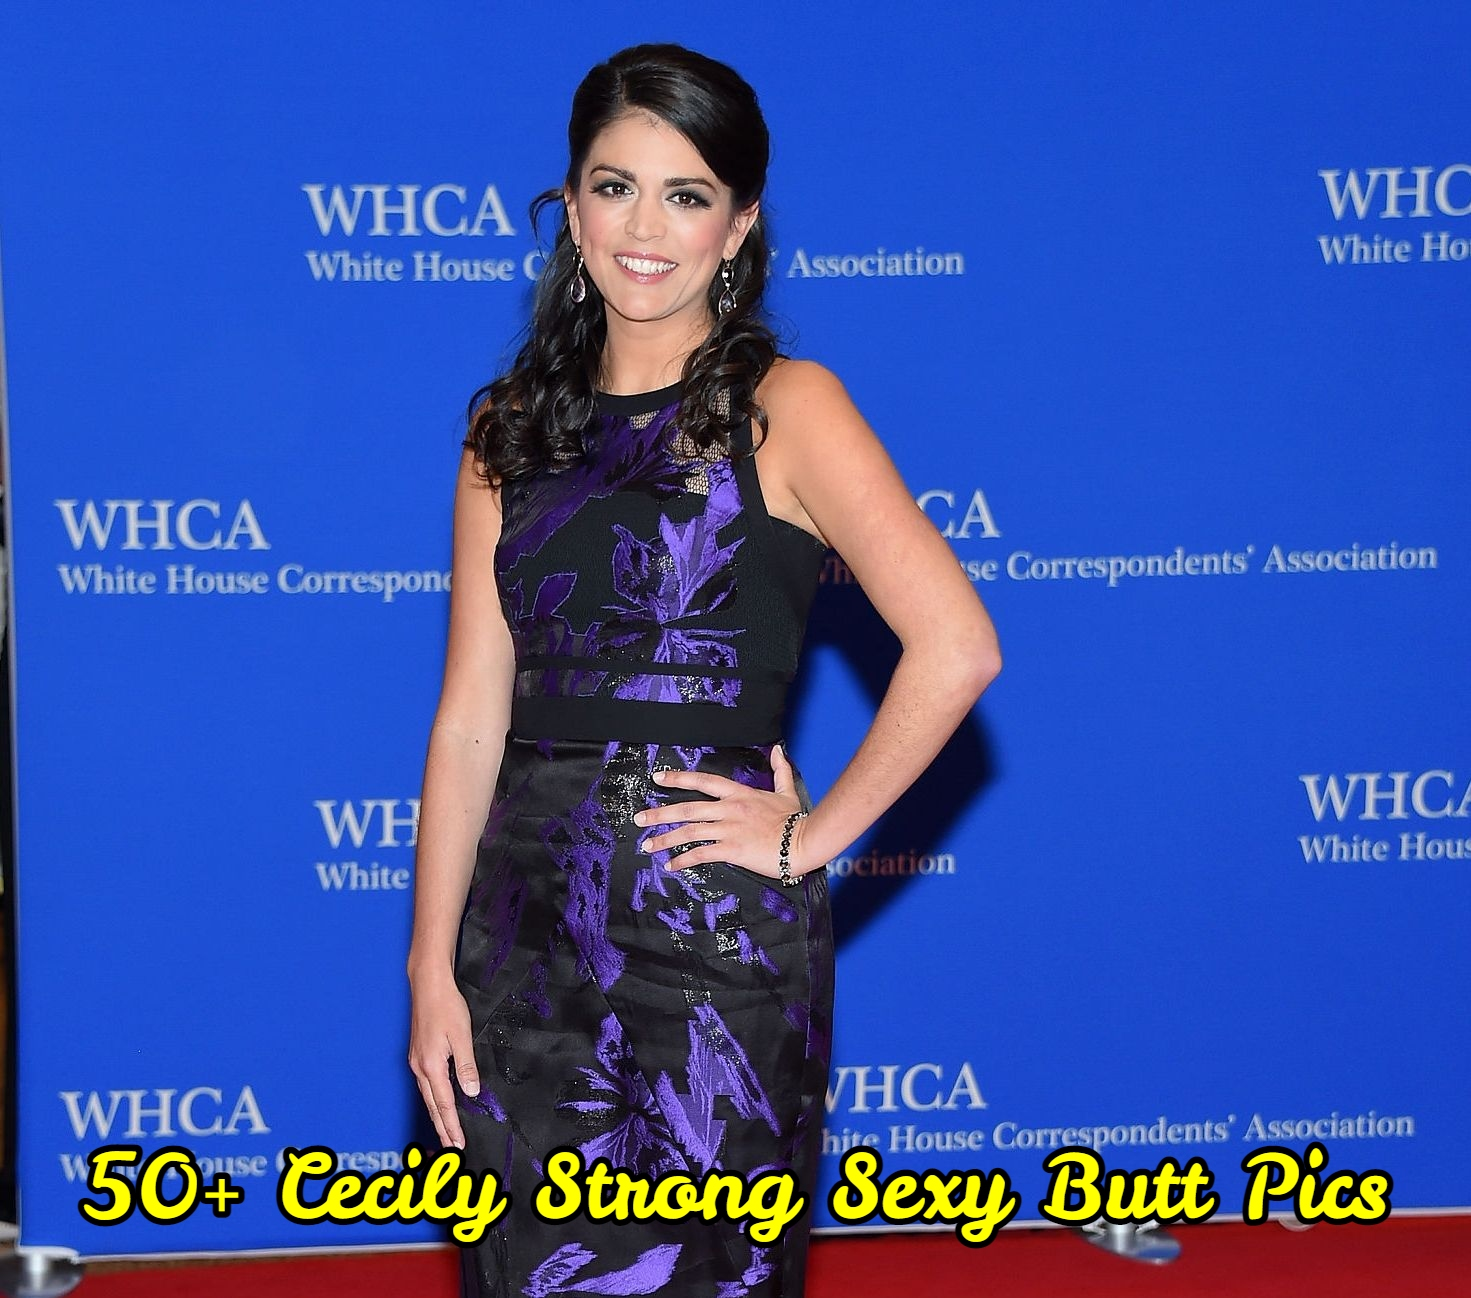 Cecily Strong Sexy Butt Pics